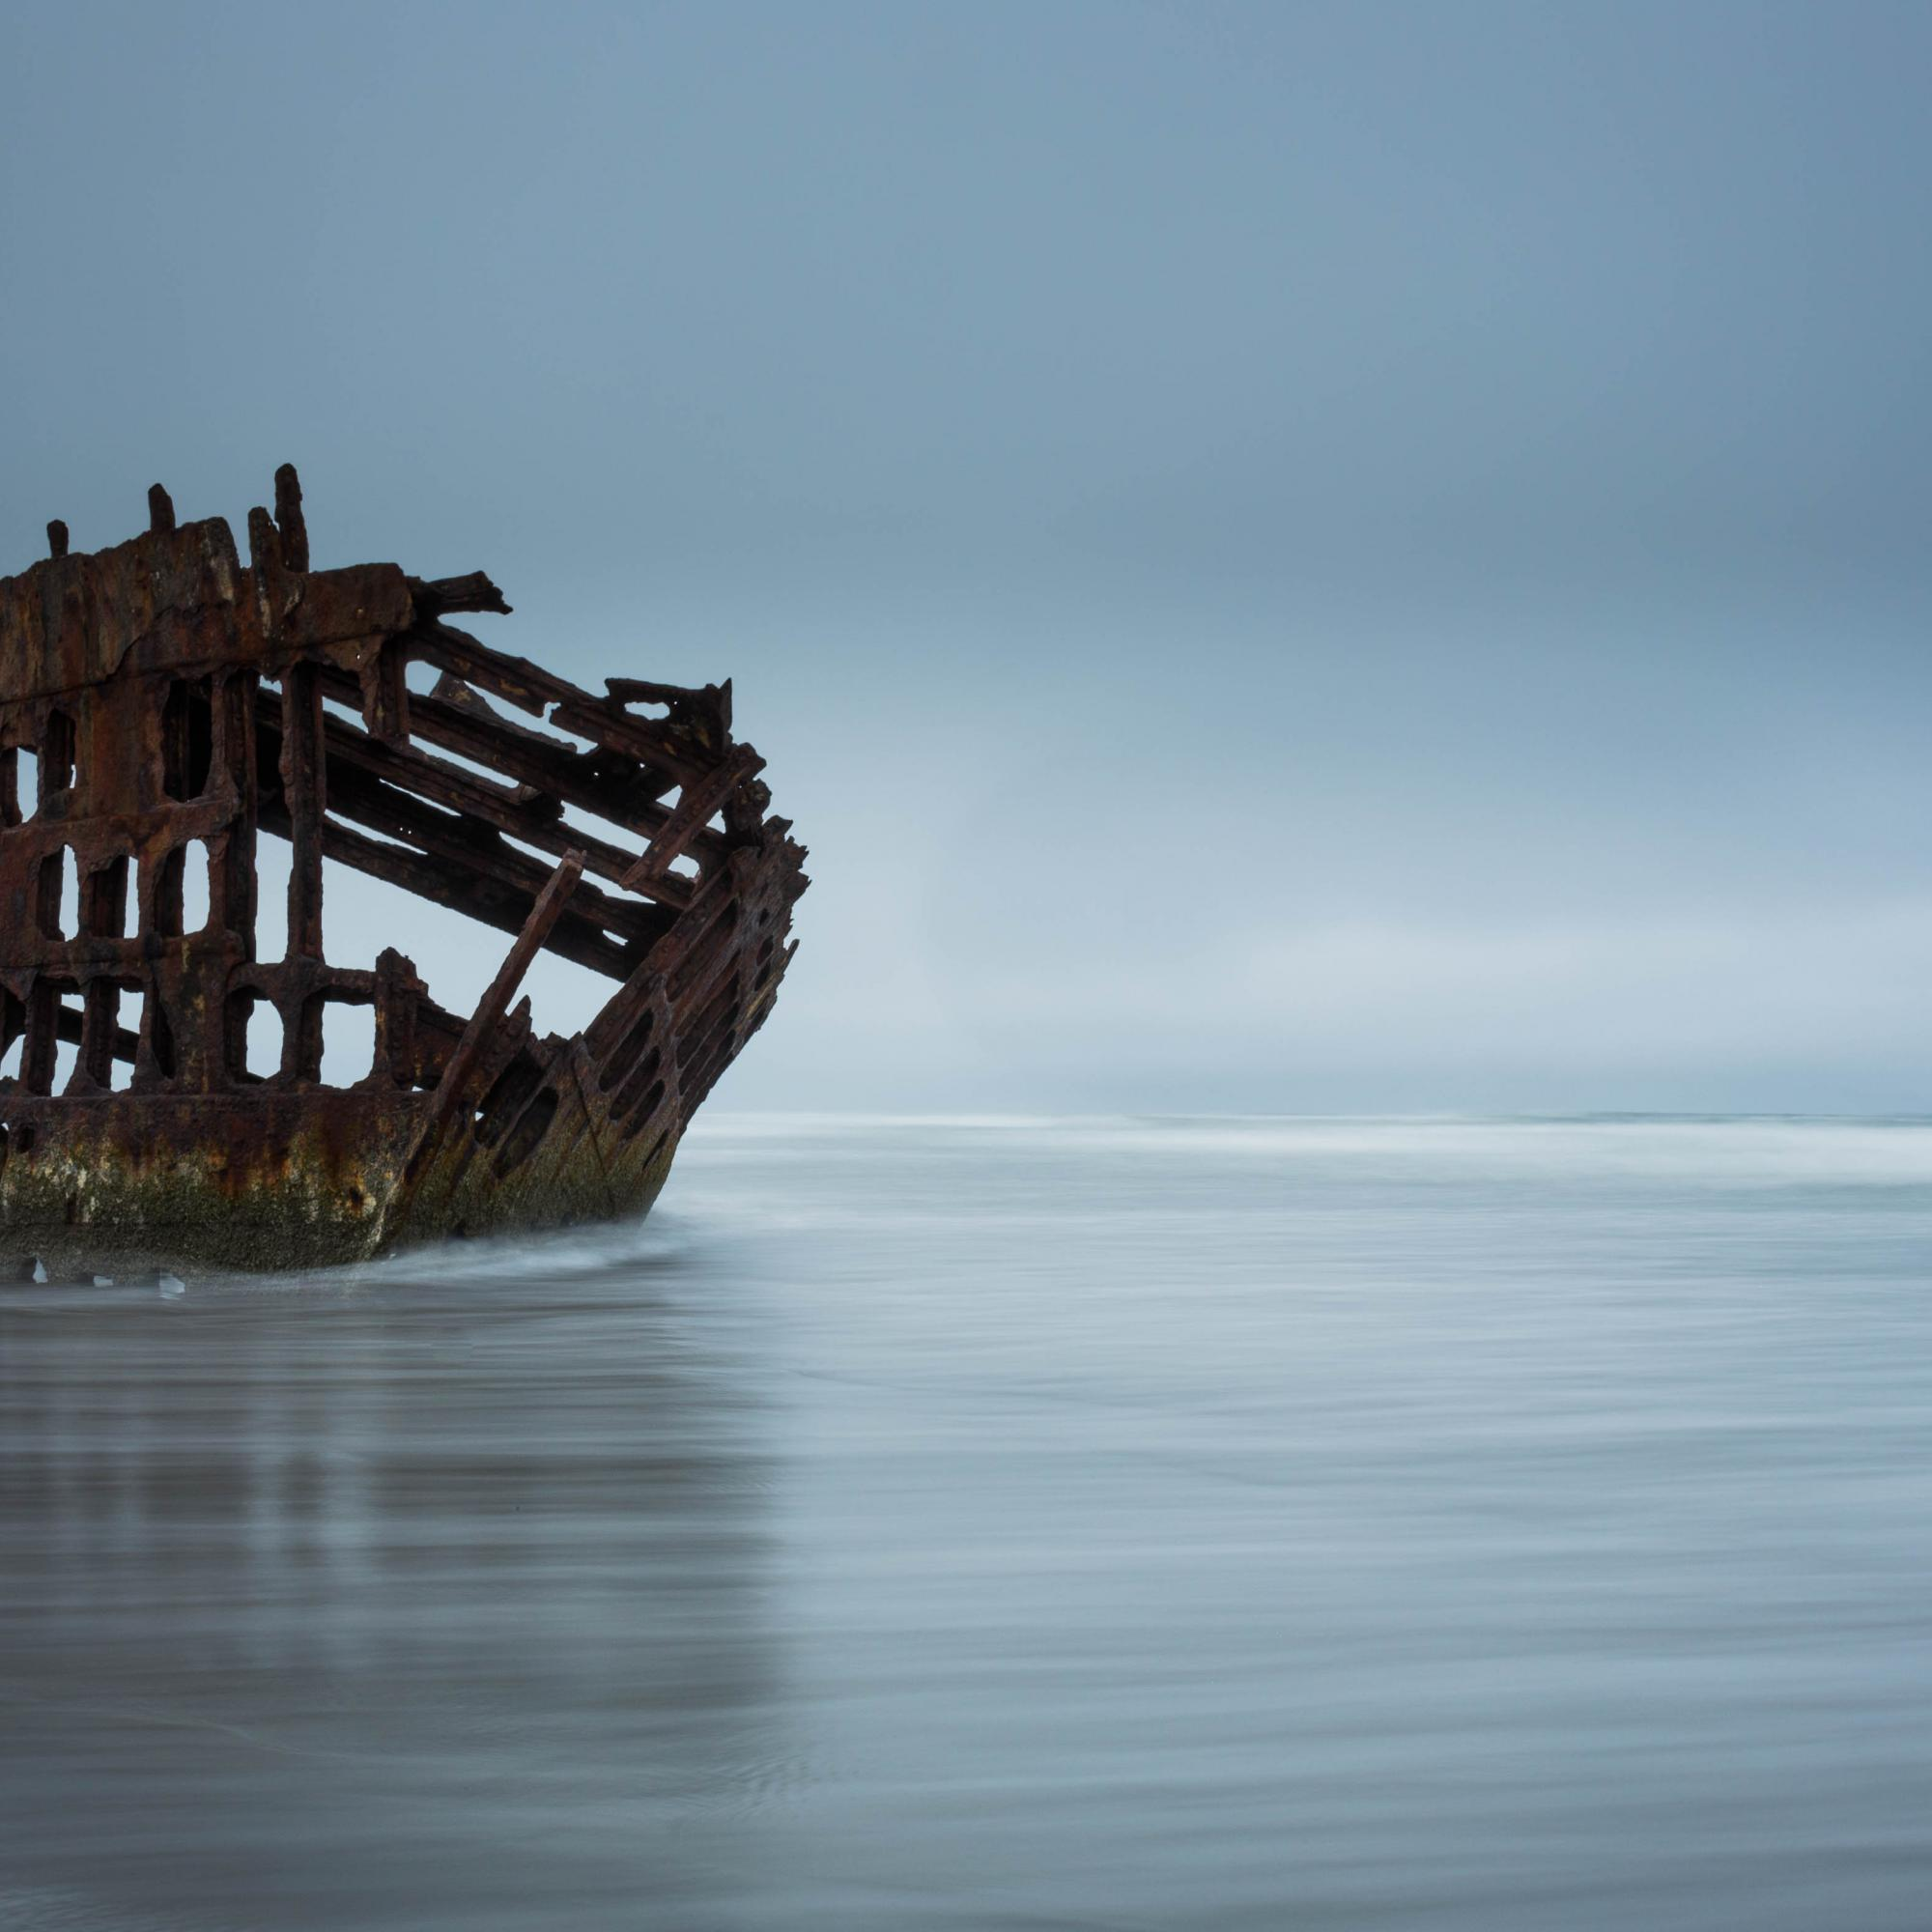 Peter Iredale on the Tide